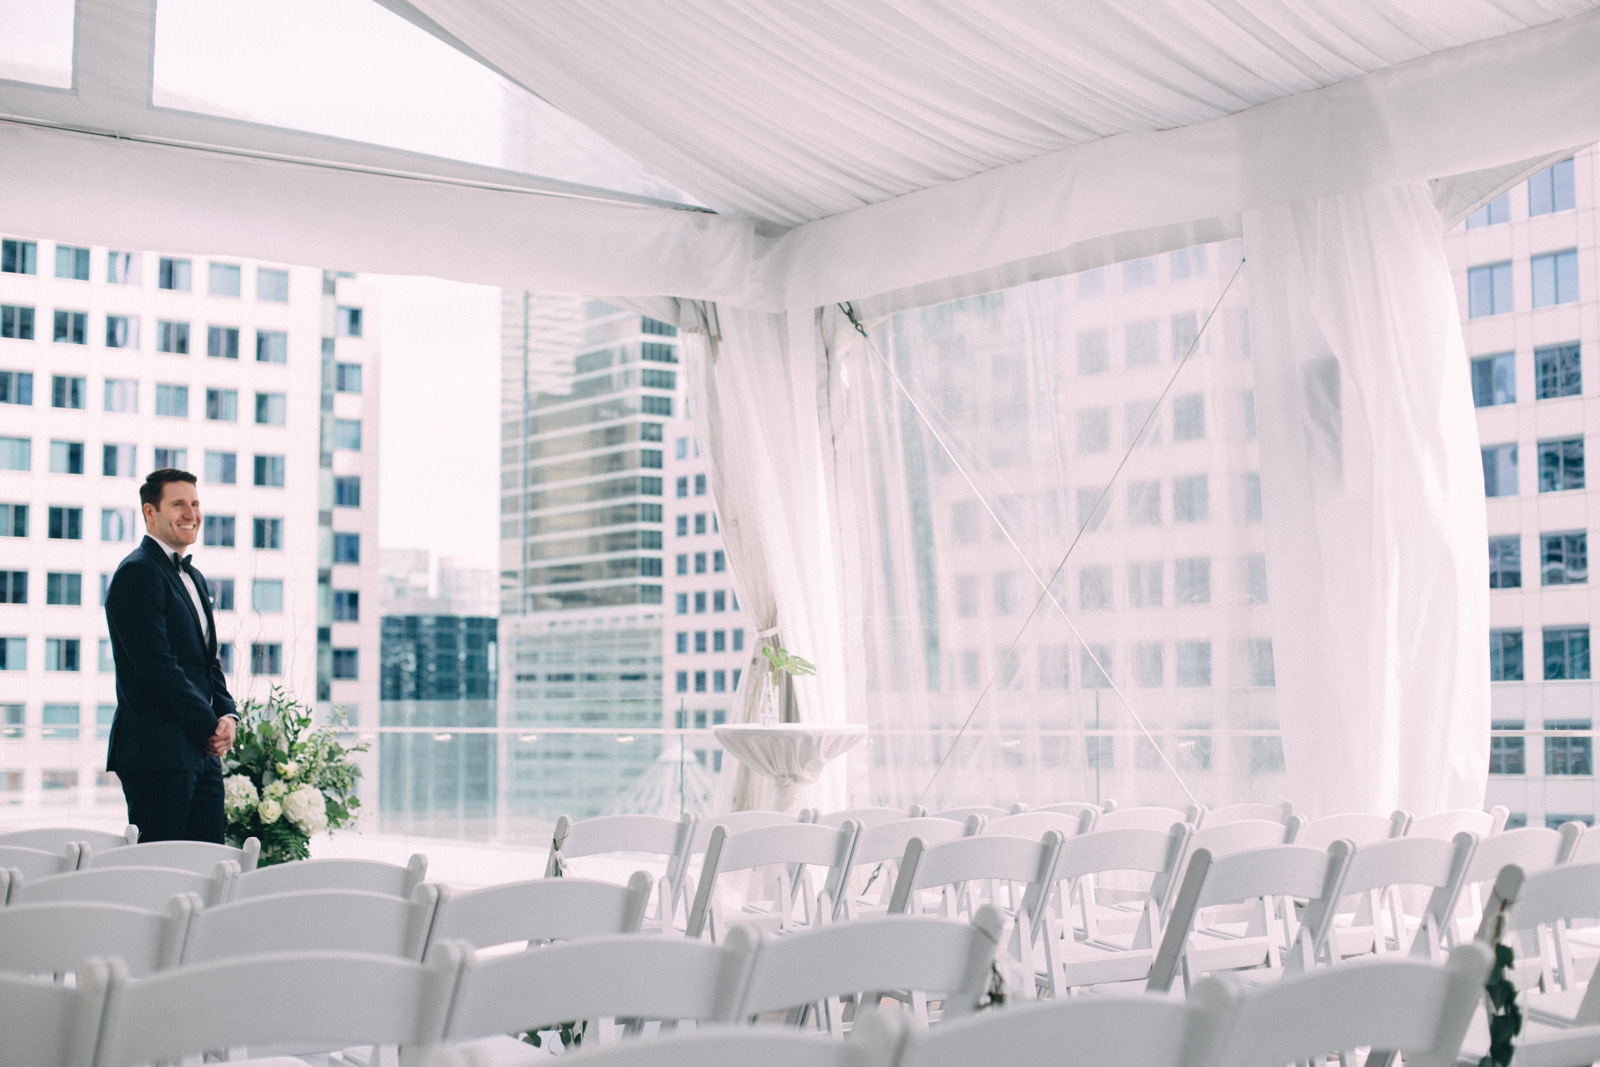 Malaparte-wedding-photography-Toronto-by-Sam-Wong-of-Artanis-Collective_24.jpg